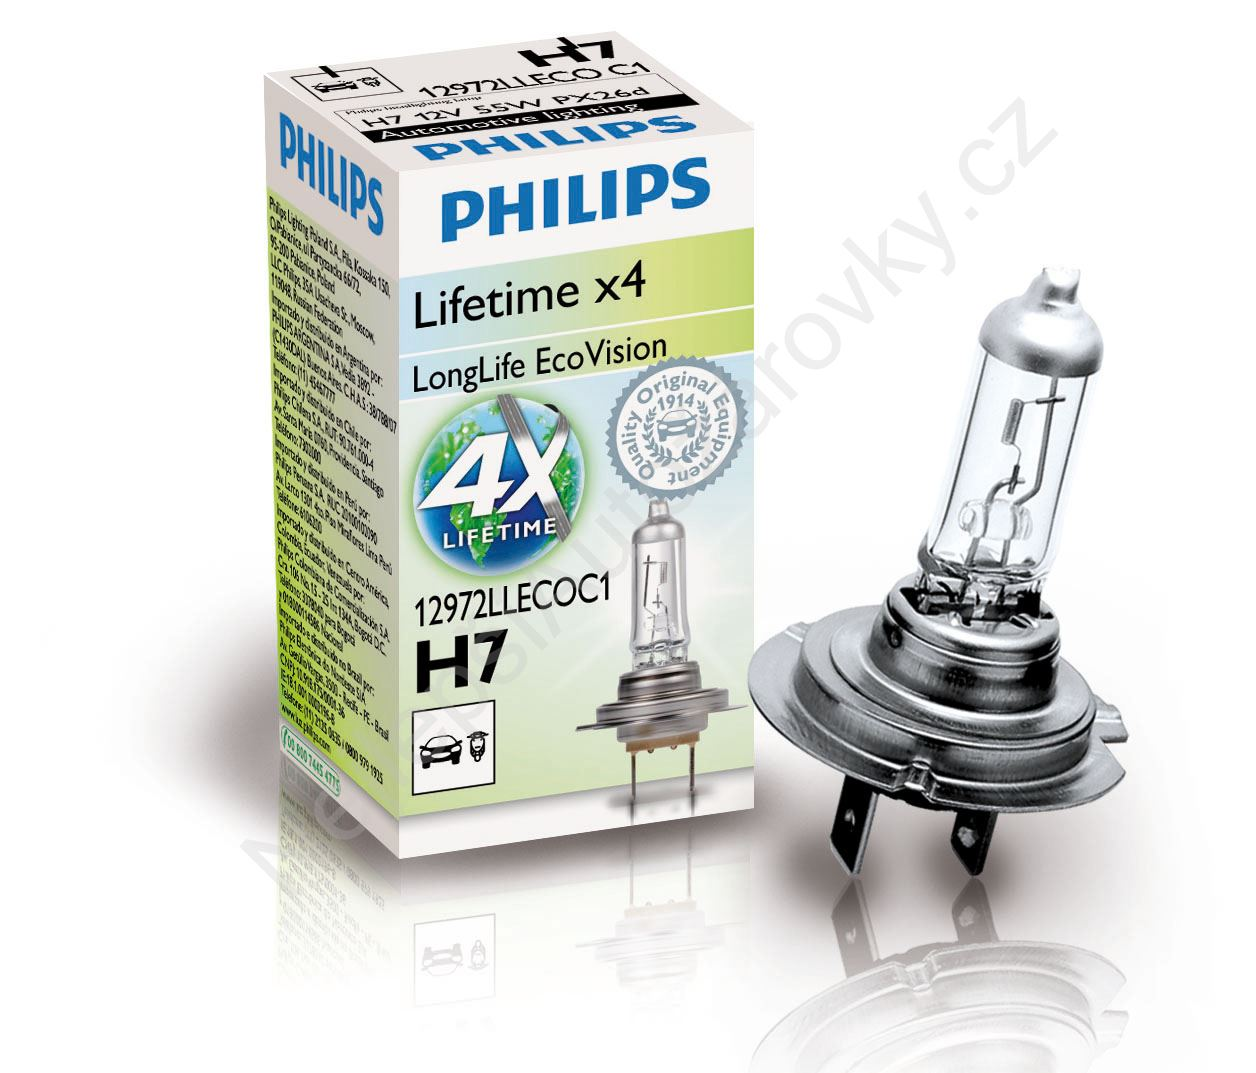 Autožárovka LongLife Eco Vision H7 12V 55W 12972LLECOC1 Philips